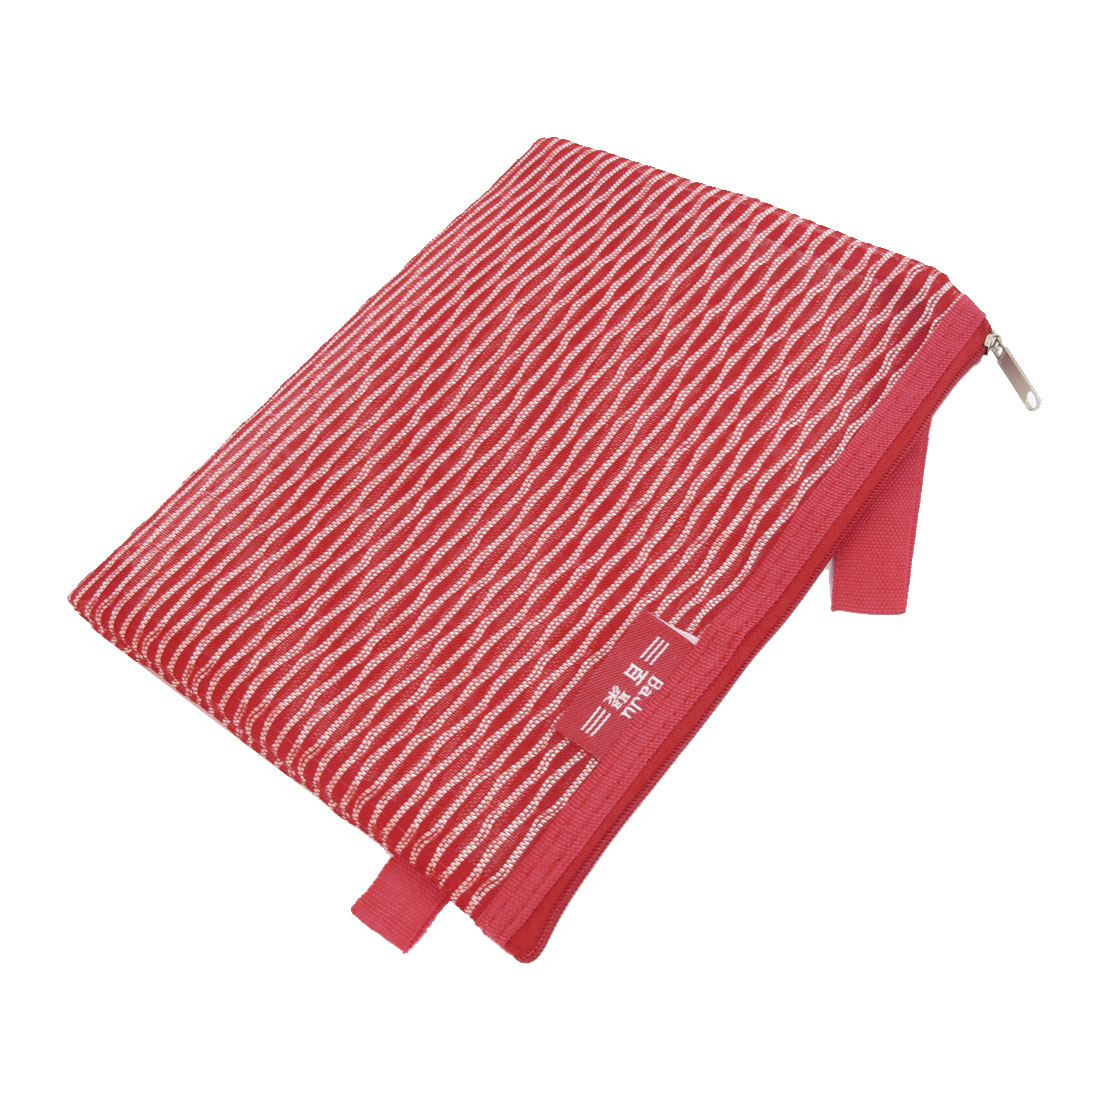 PVC Gridding Zipper Closure A4 Paper File Bag Office Document Holder Red